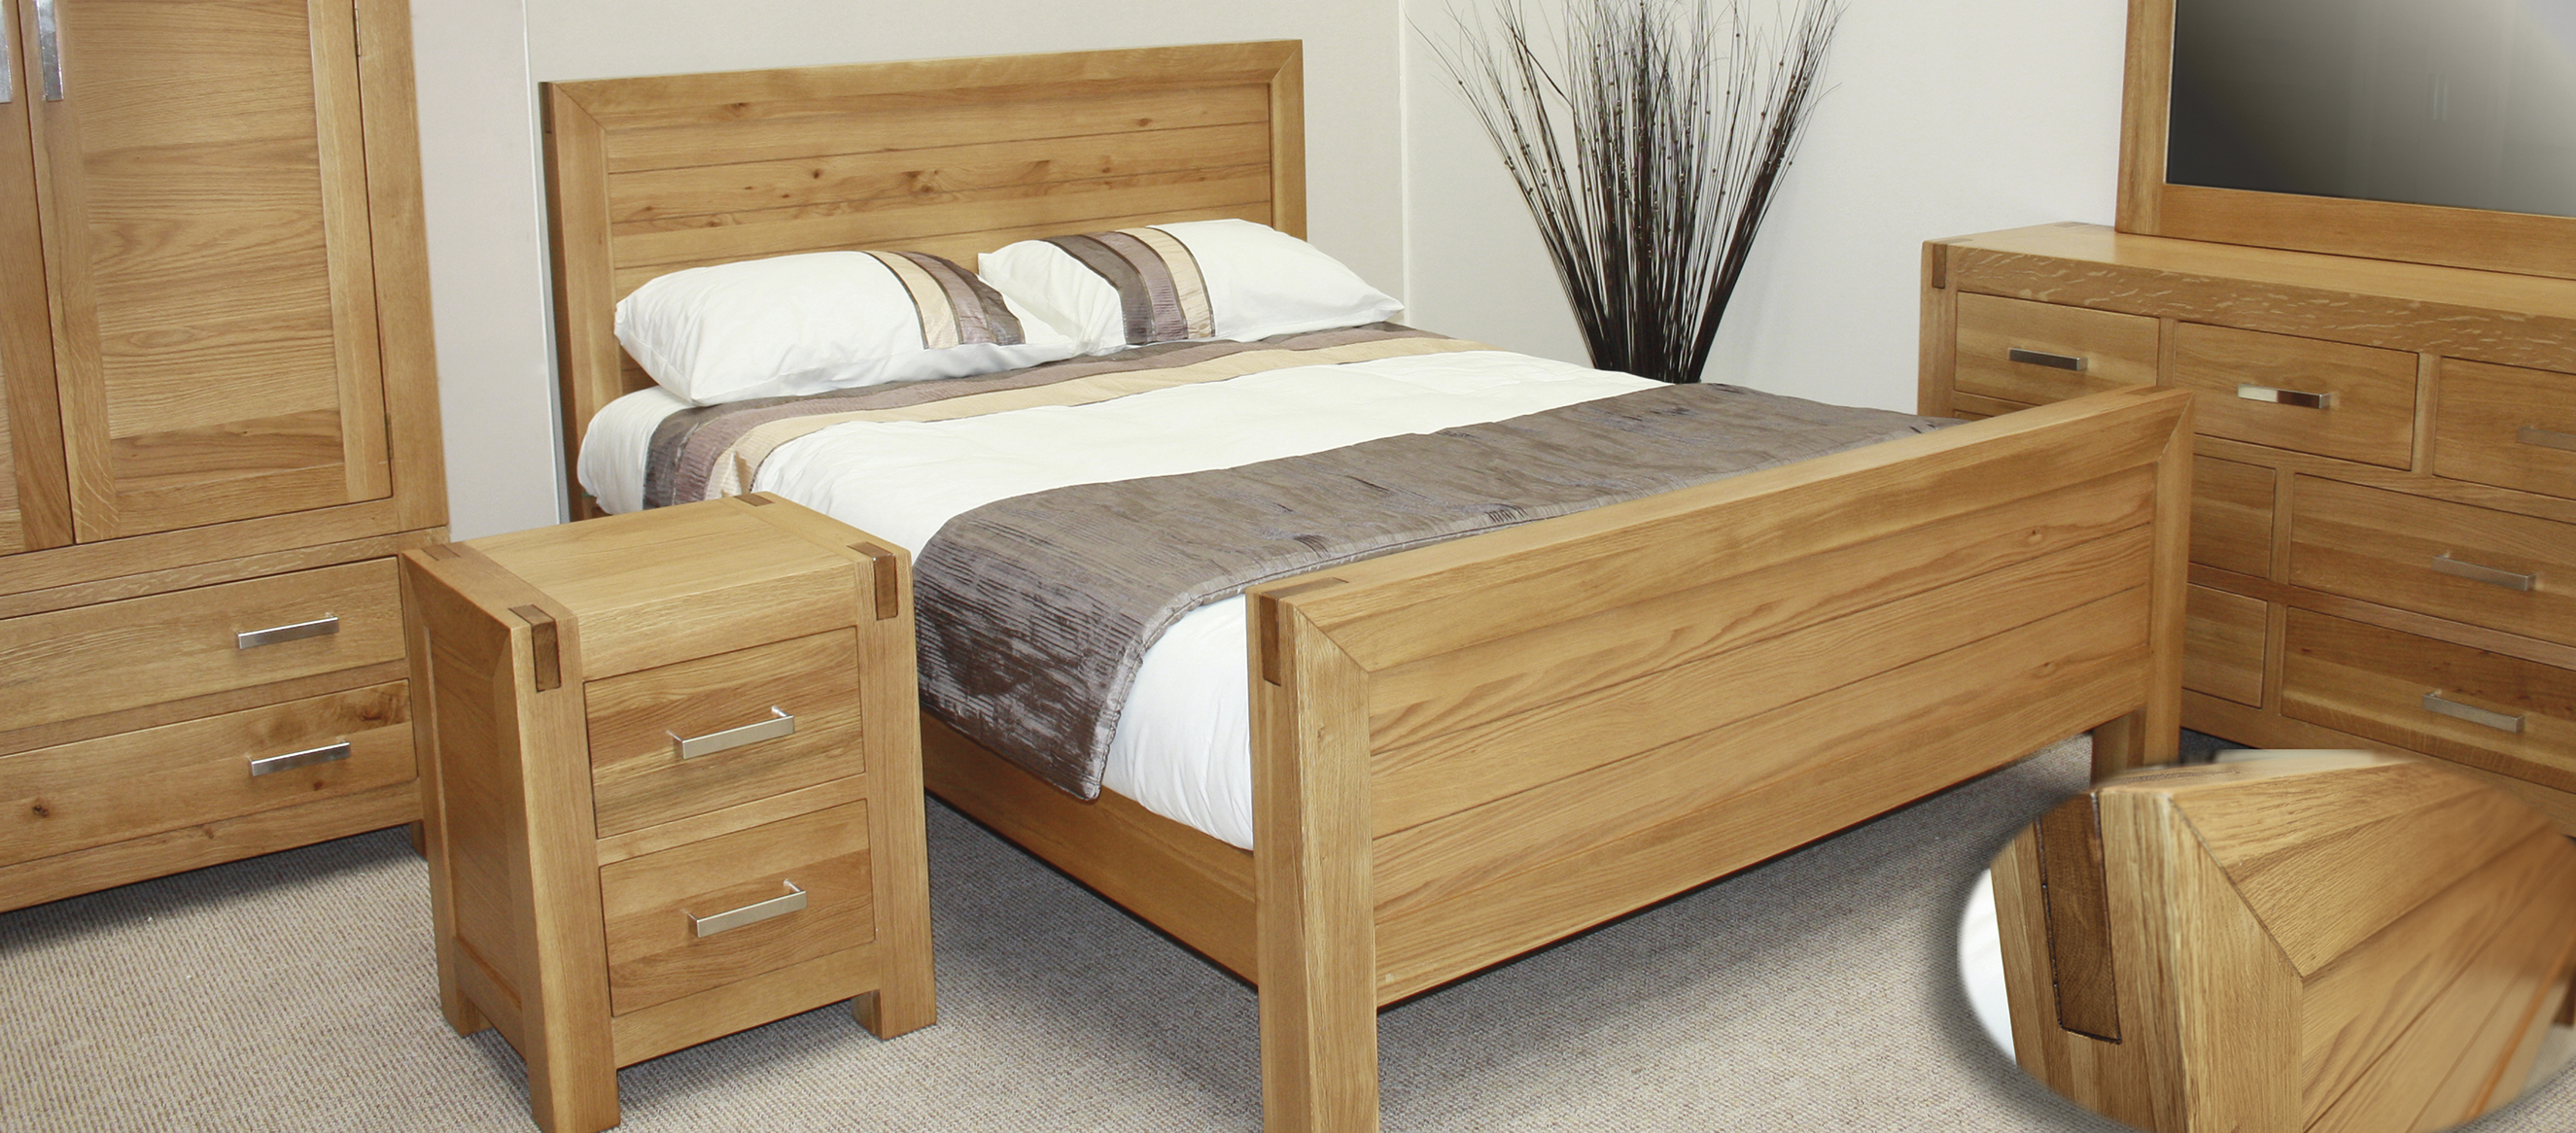 Somerset Bedroom furniture